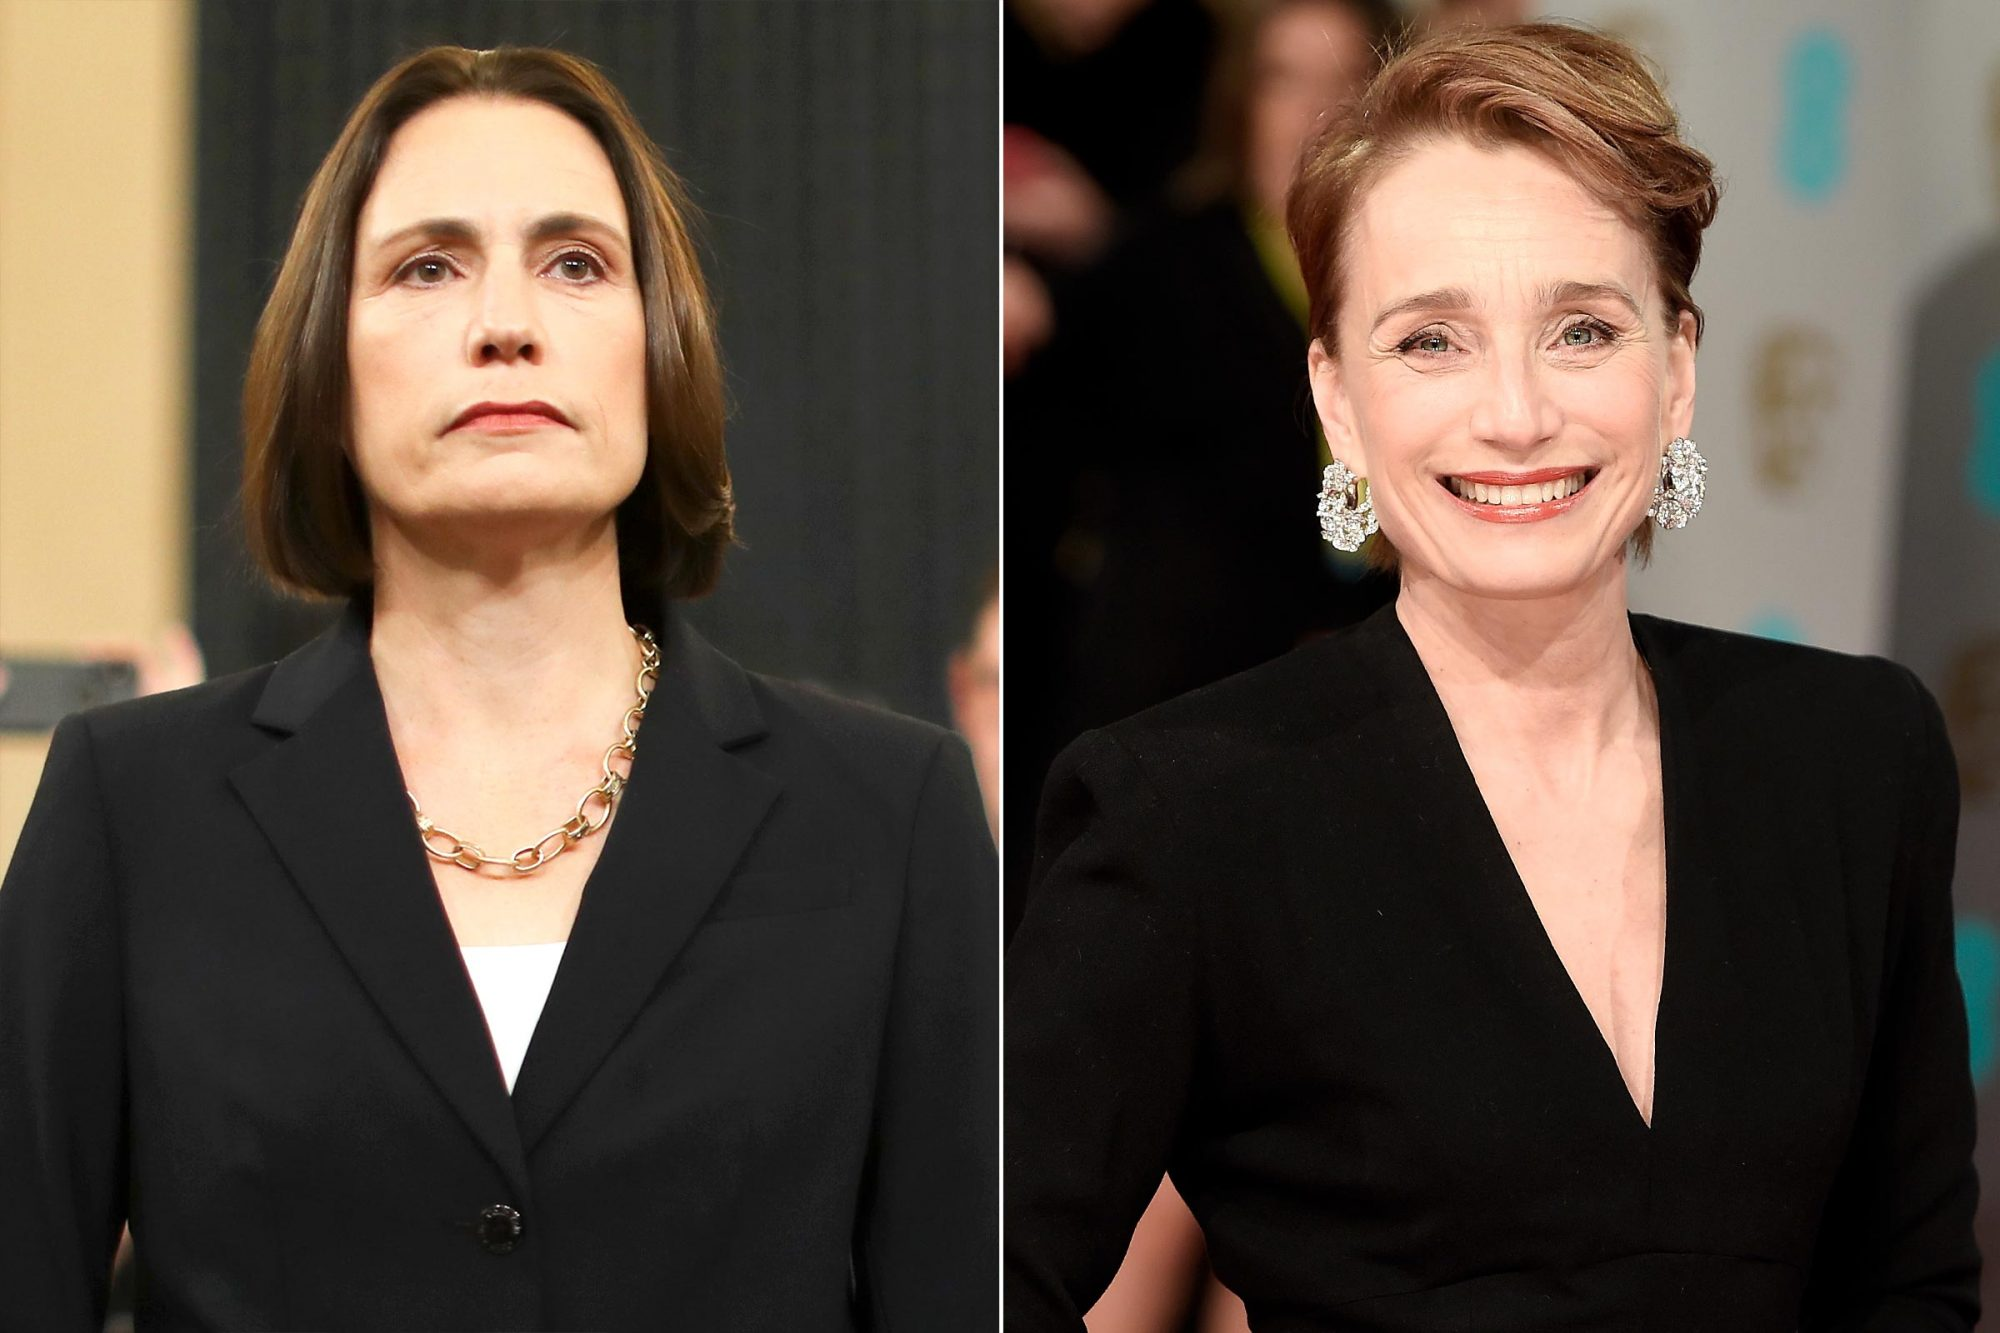 Fiona-Hill-Kristin-Scott-Thomas